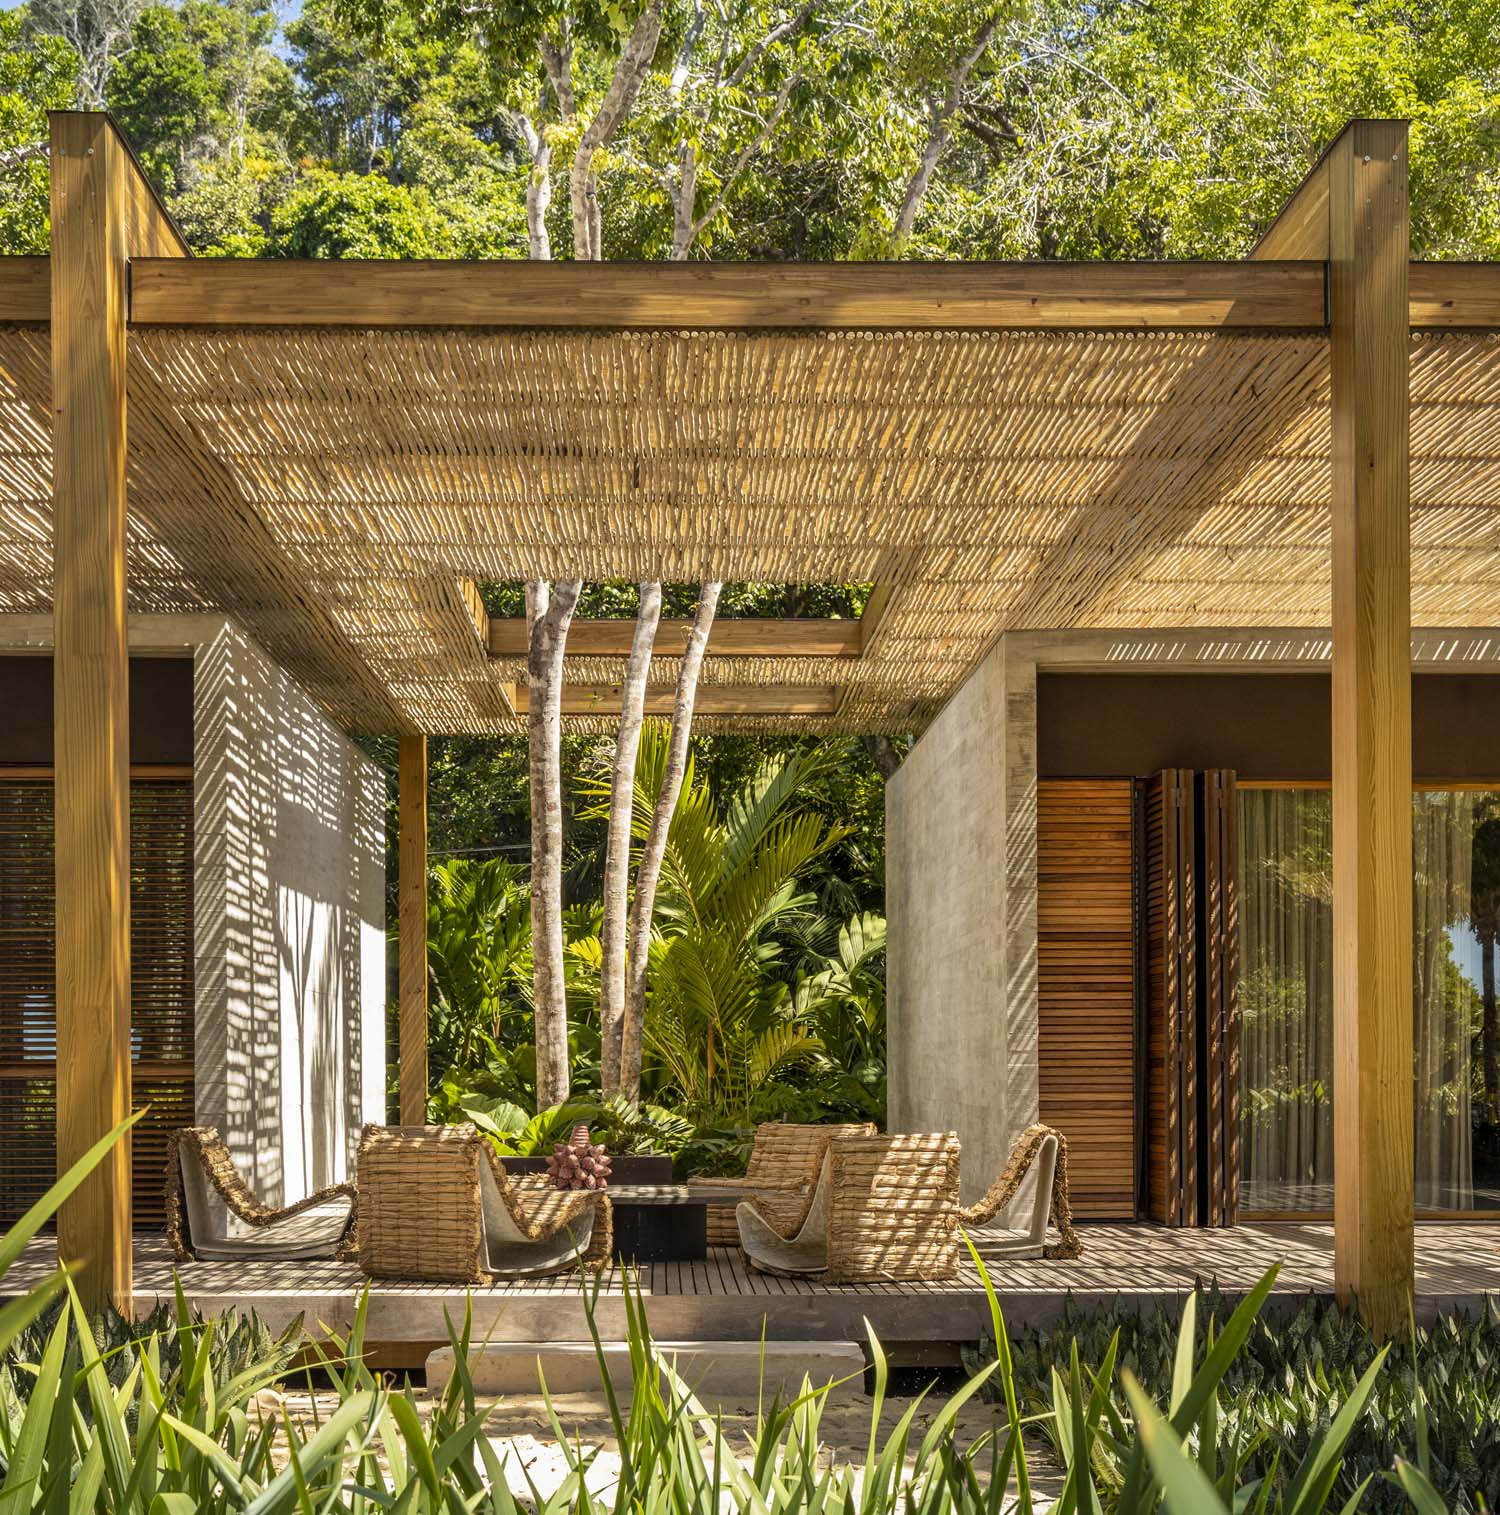 The continuity of the twelve rectangular openings in the canopy is interrupted by several trees that are embraced by the deck. Fernando Guerra